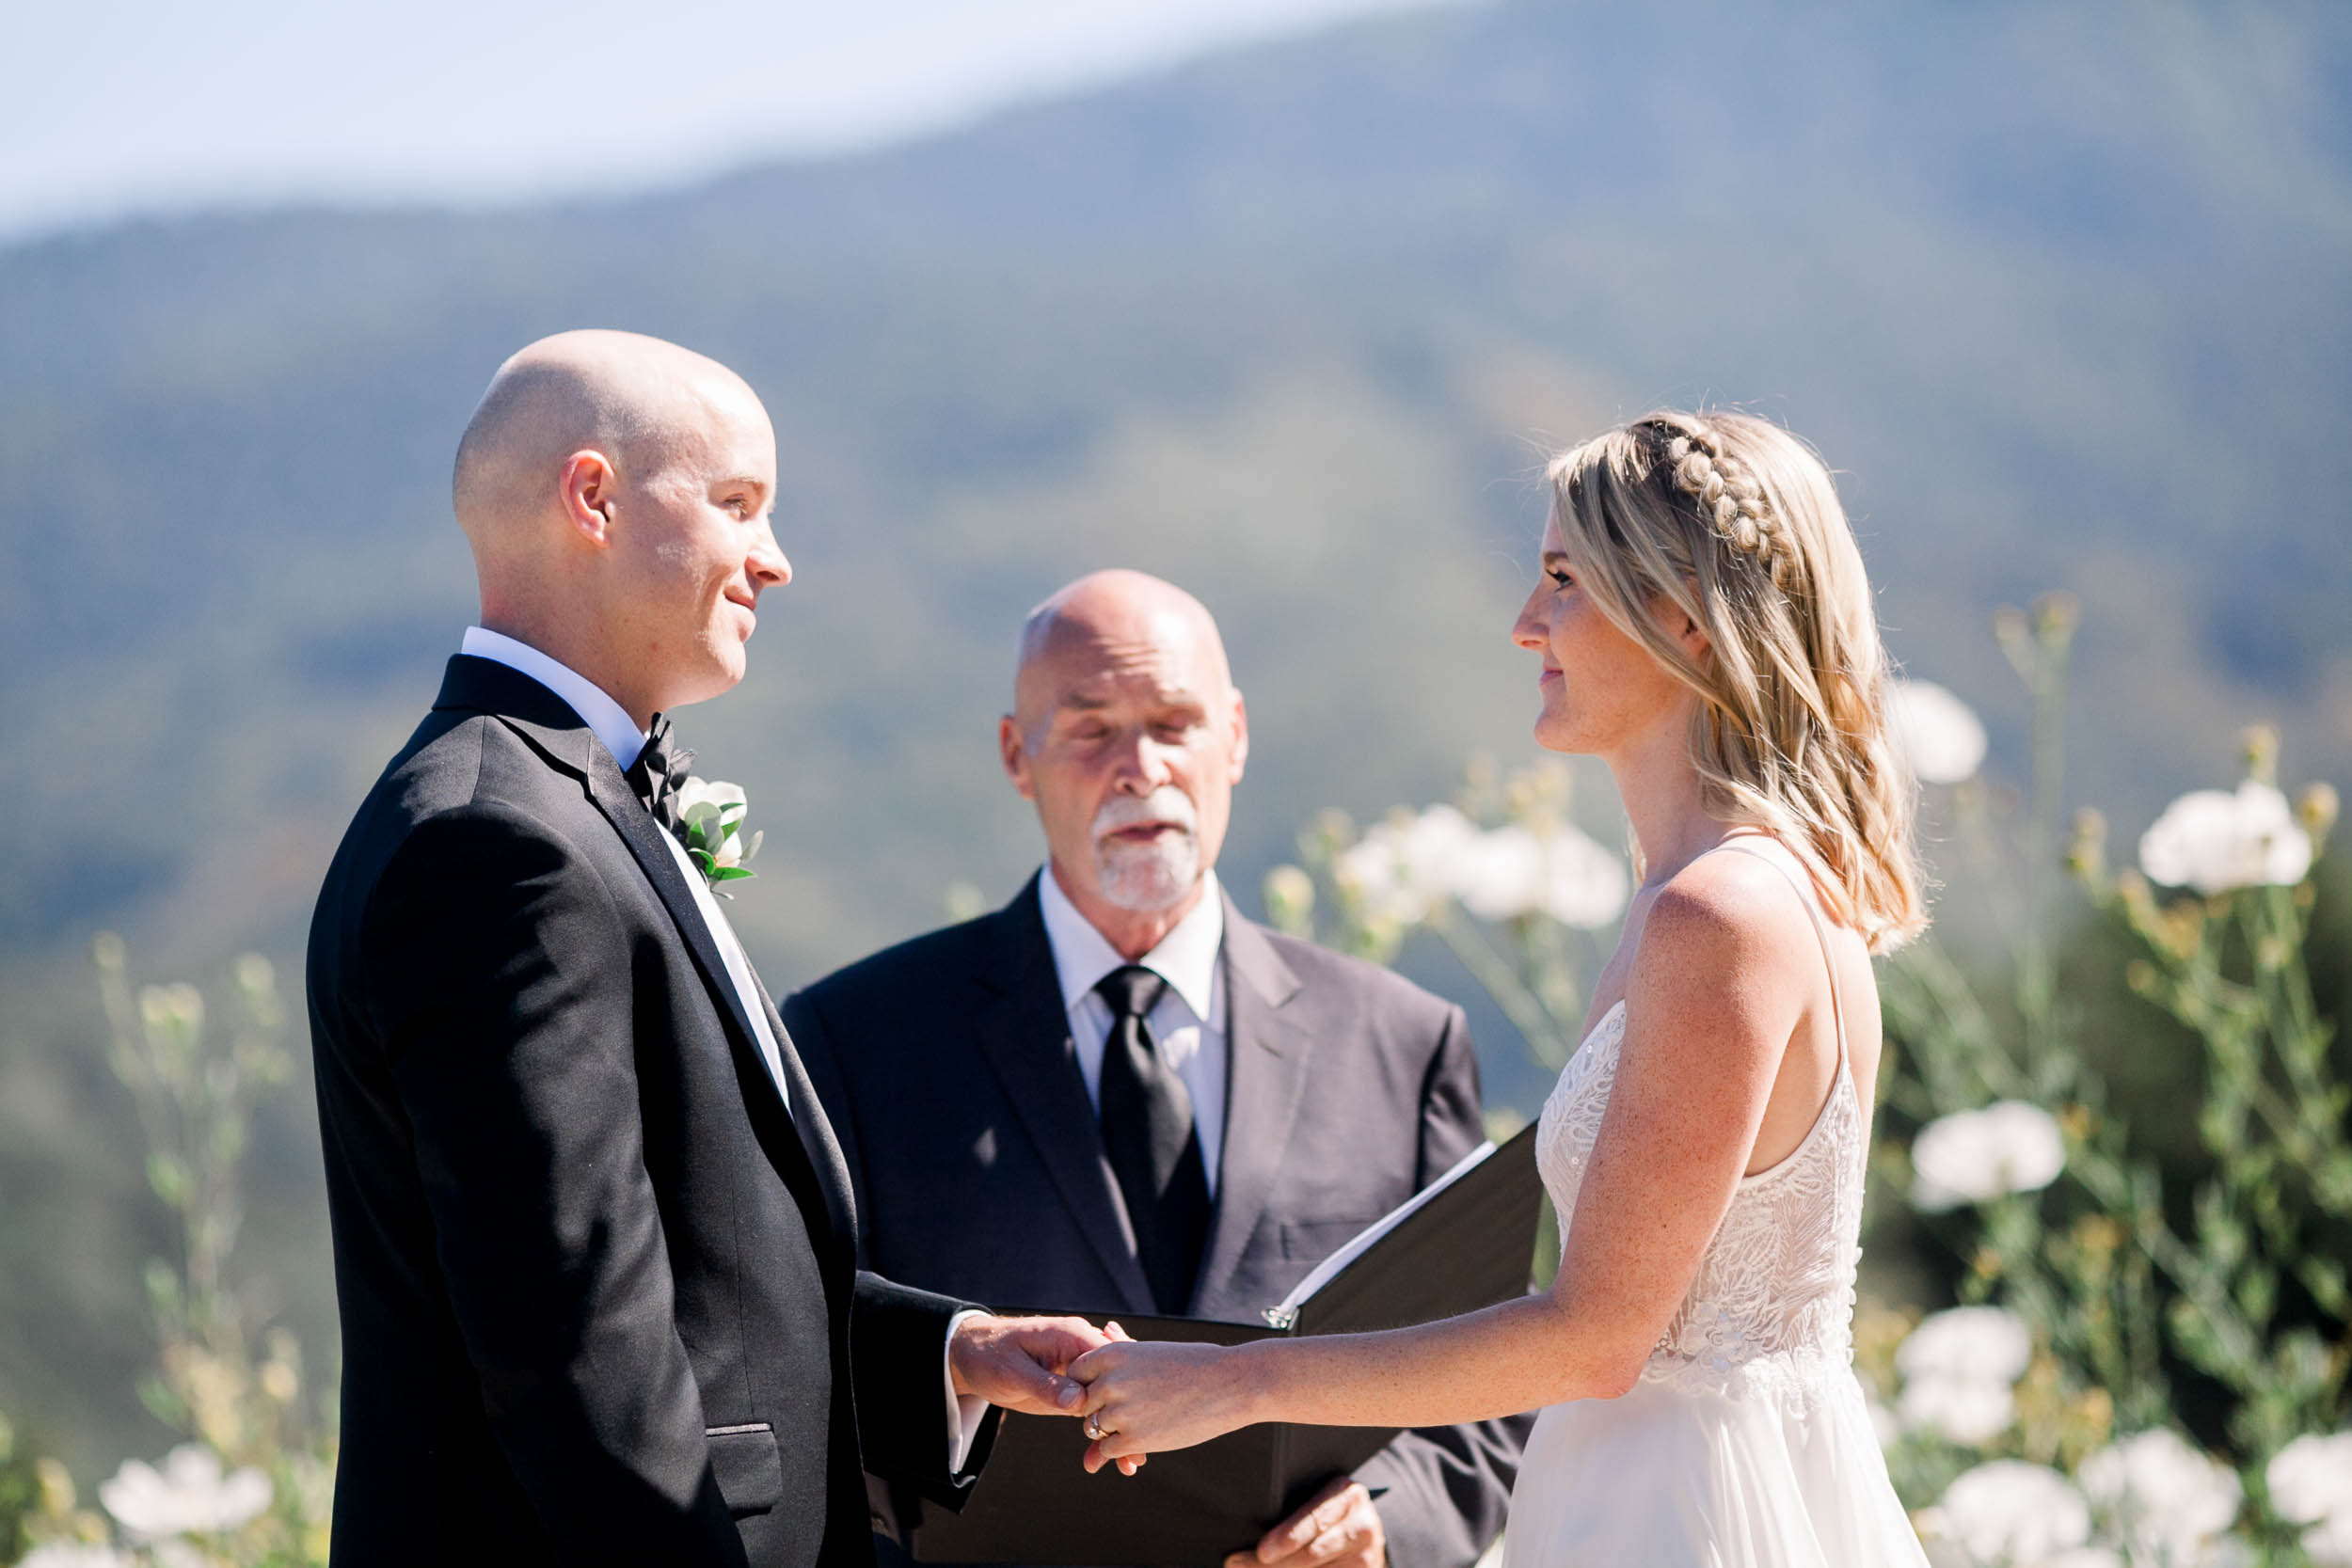 C+D_Holman Ranch Wedding_Carmel Valley_Buena Lane Photography_060619_ER302.jpg